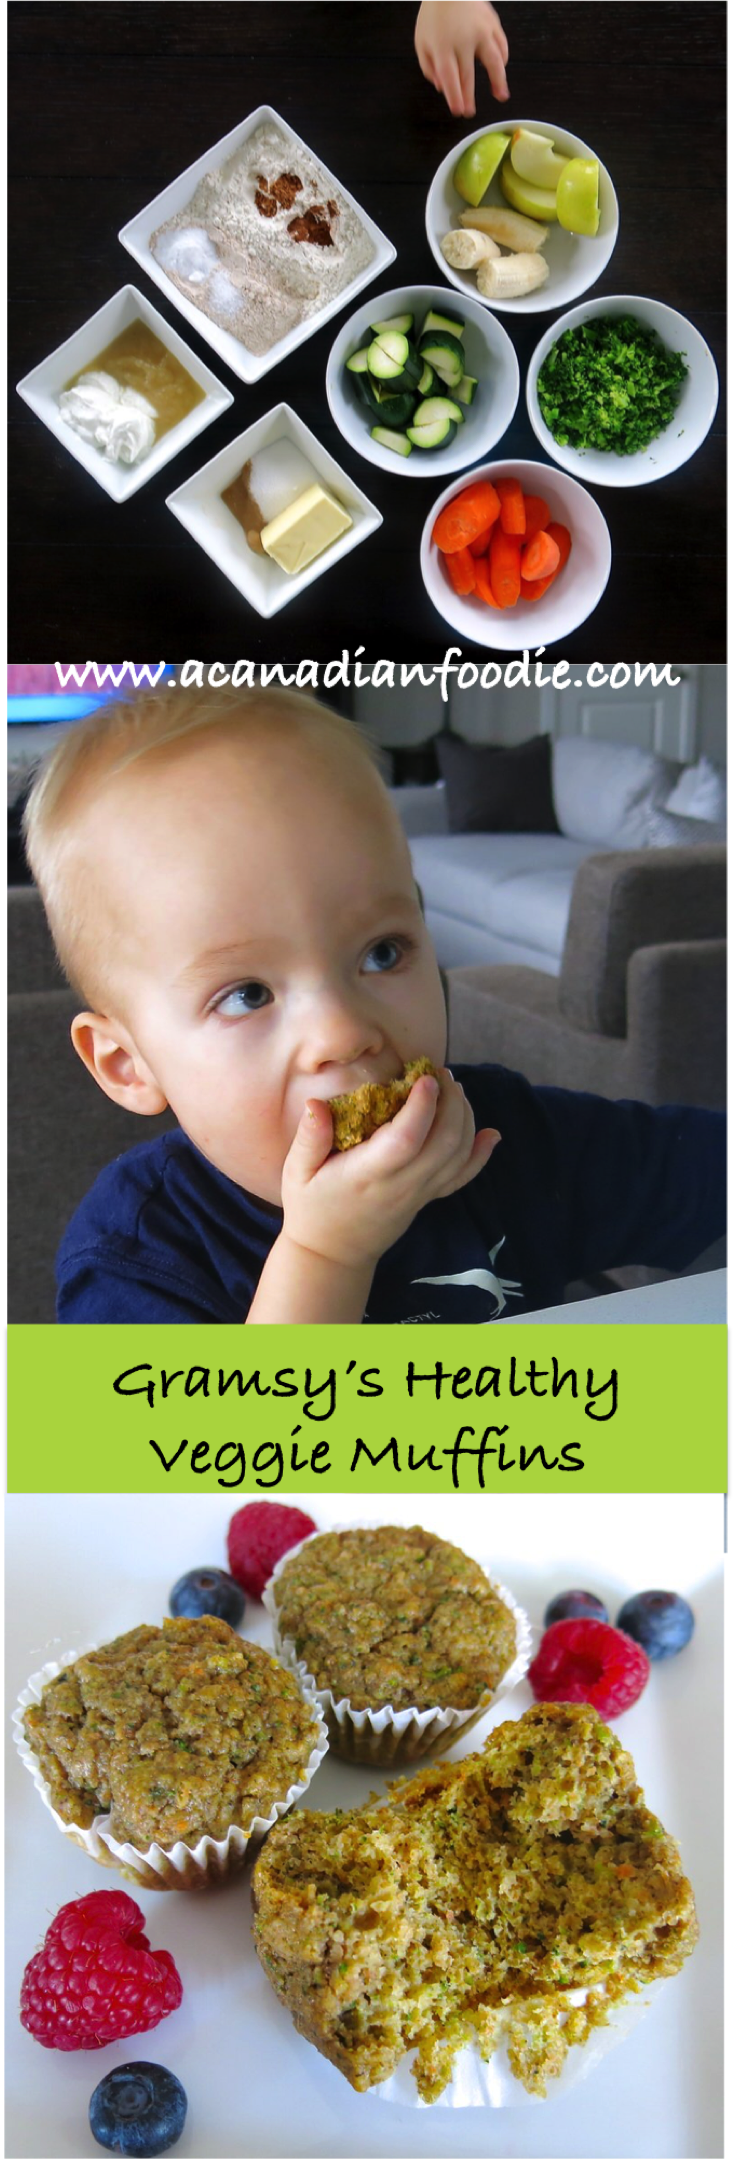 Gramsy's Healthy Veggie Muffins packed with veggies, fruit and whole grains will build strong minds and bodies of the littles you love!